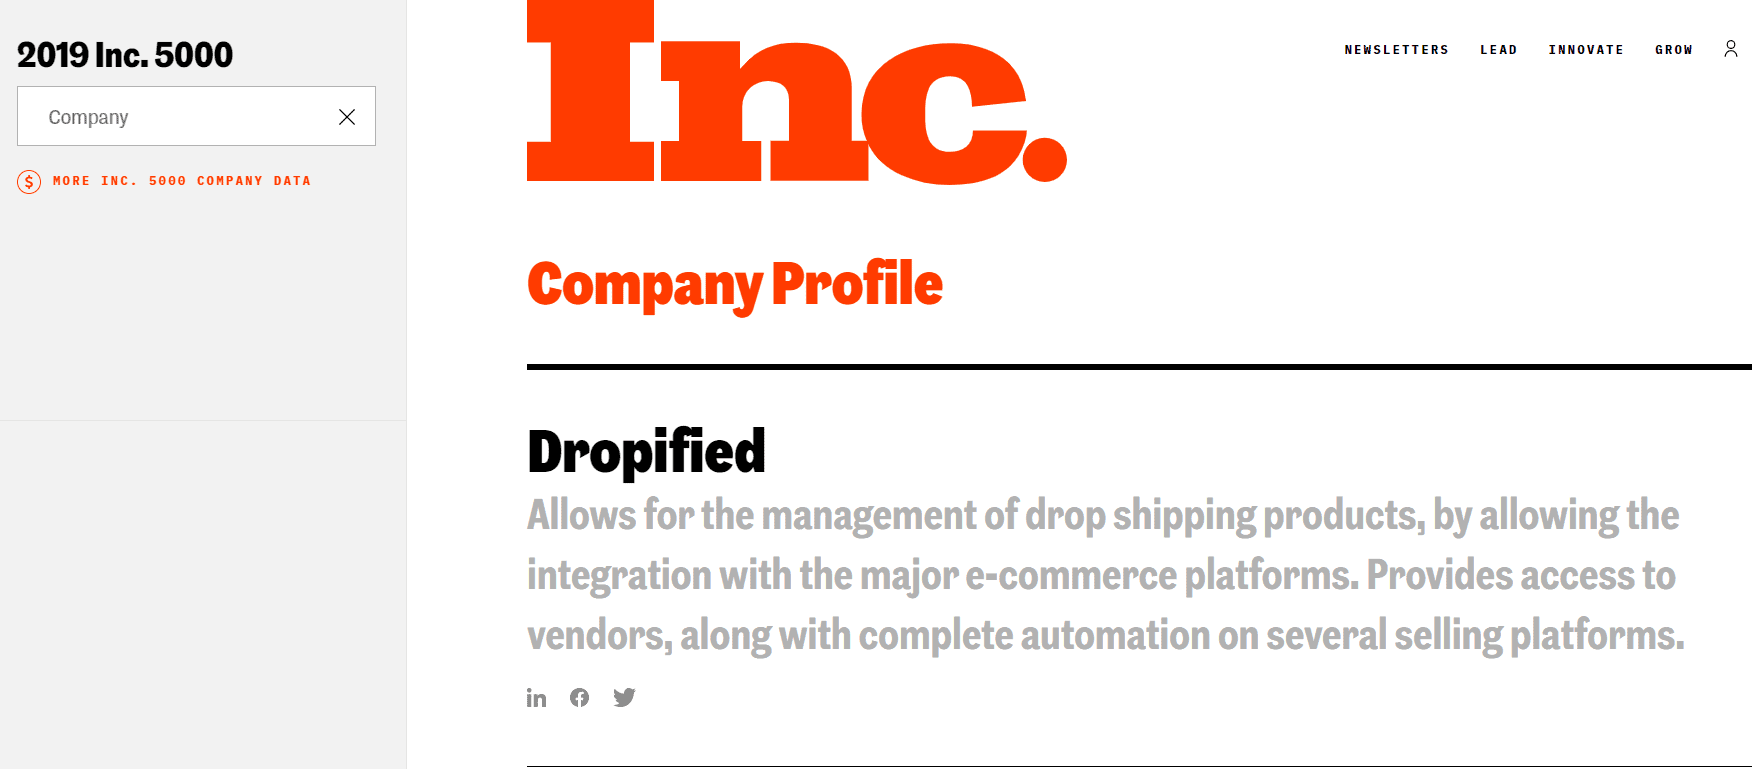 Dropified featured in inc